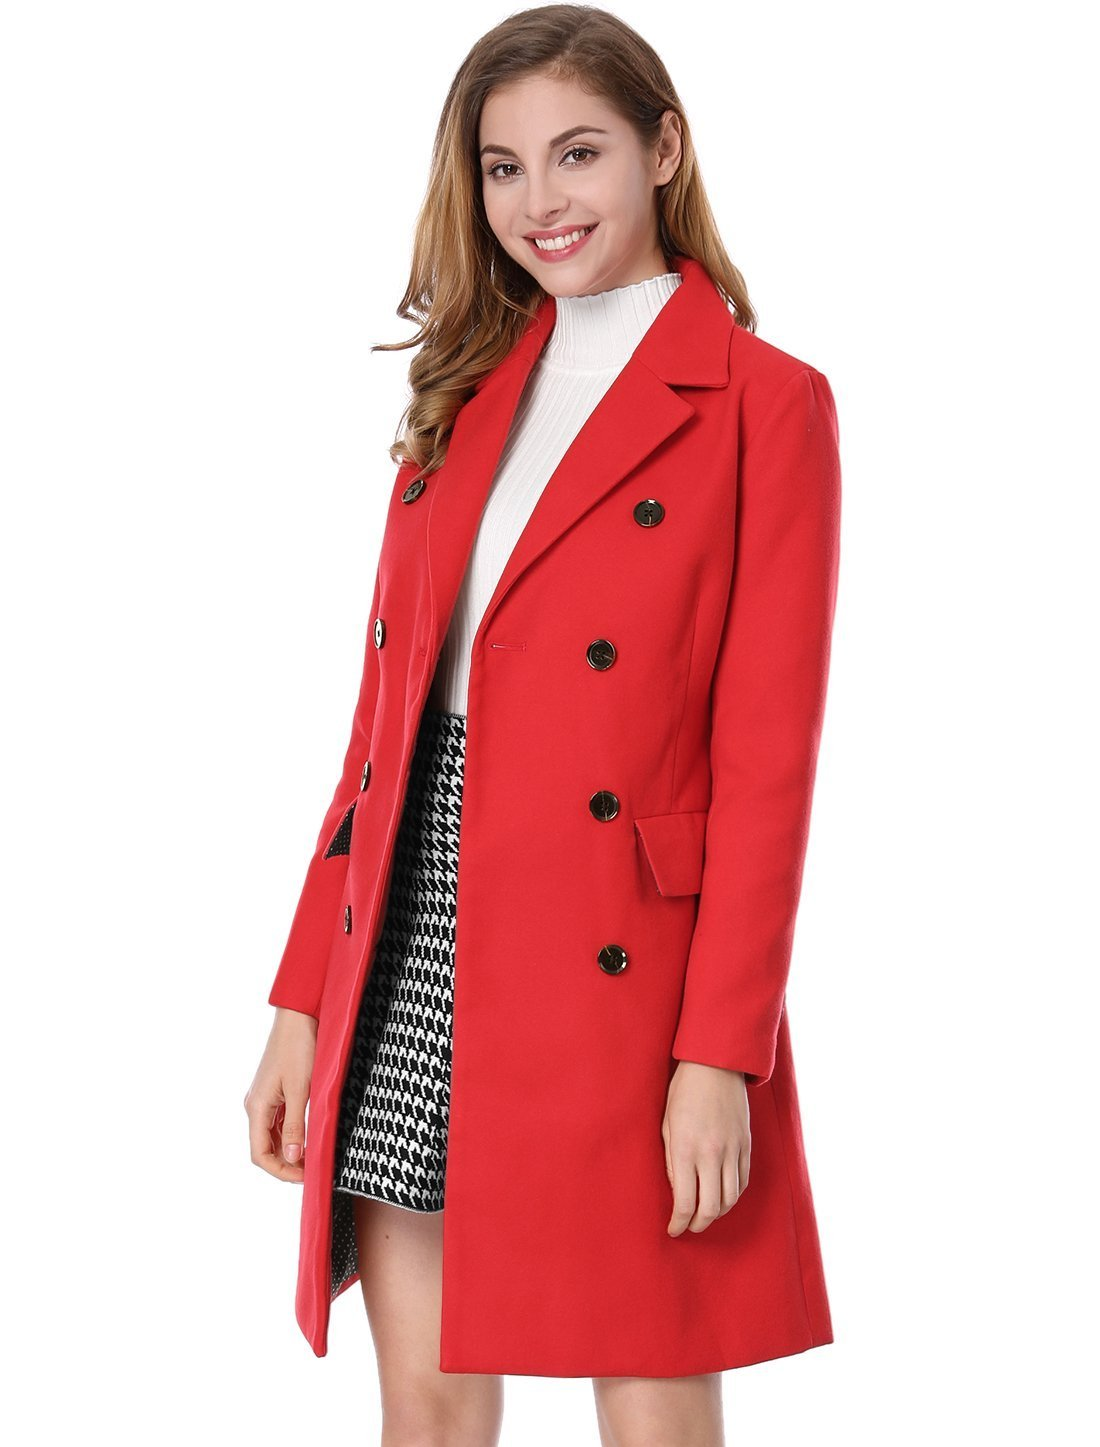 Allegra K Women's Notched Lapel Double Breasted Trench Coat L Red